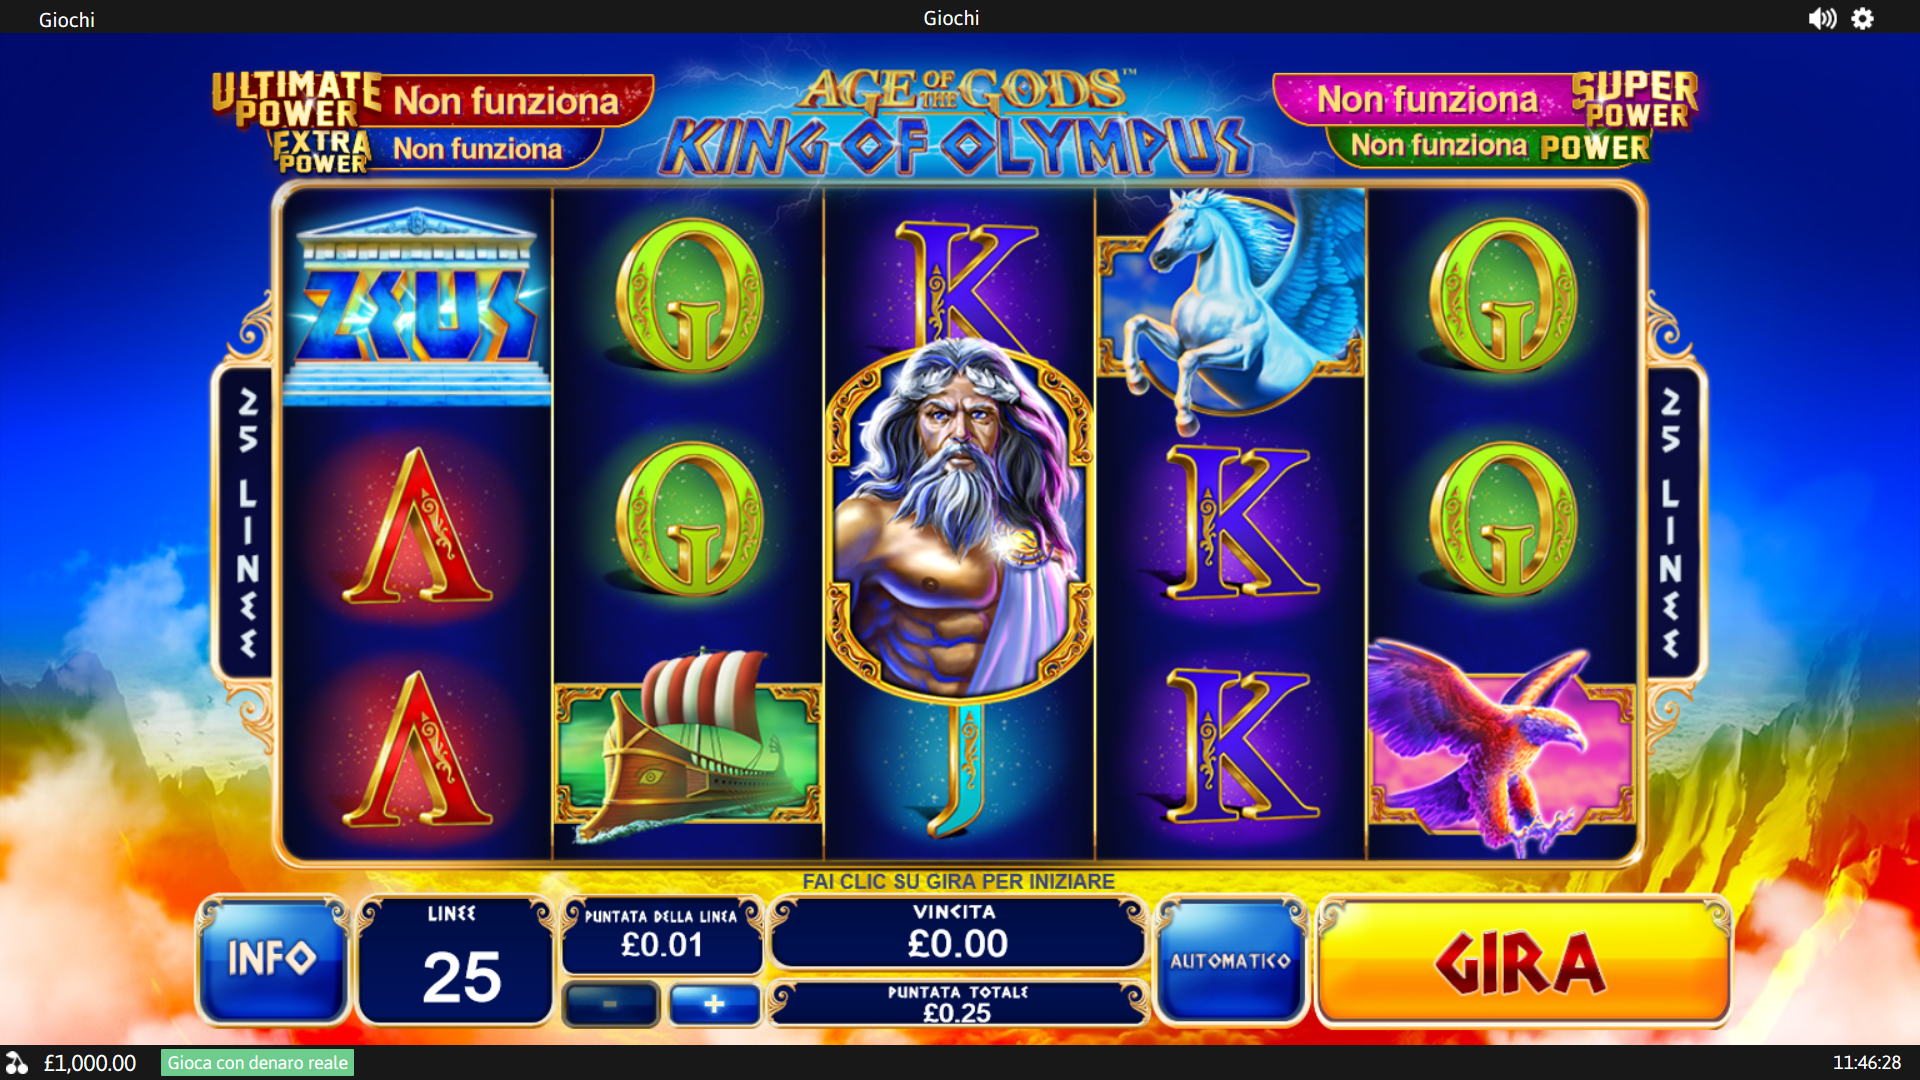 Slot Age of the Gods King of Olympus